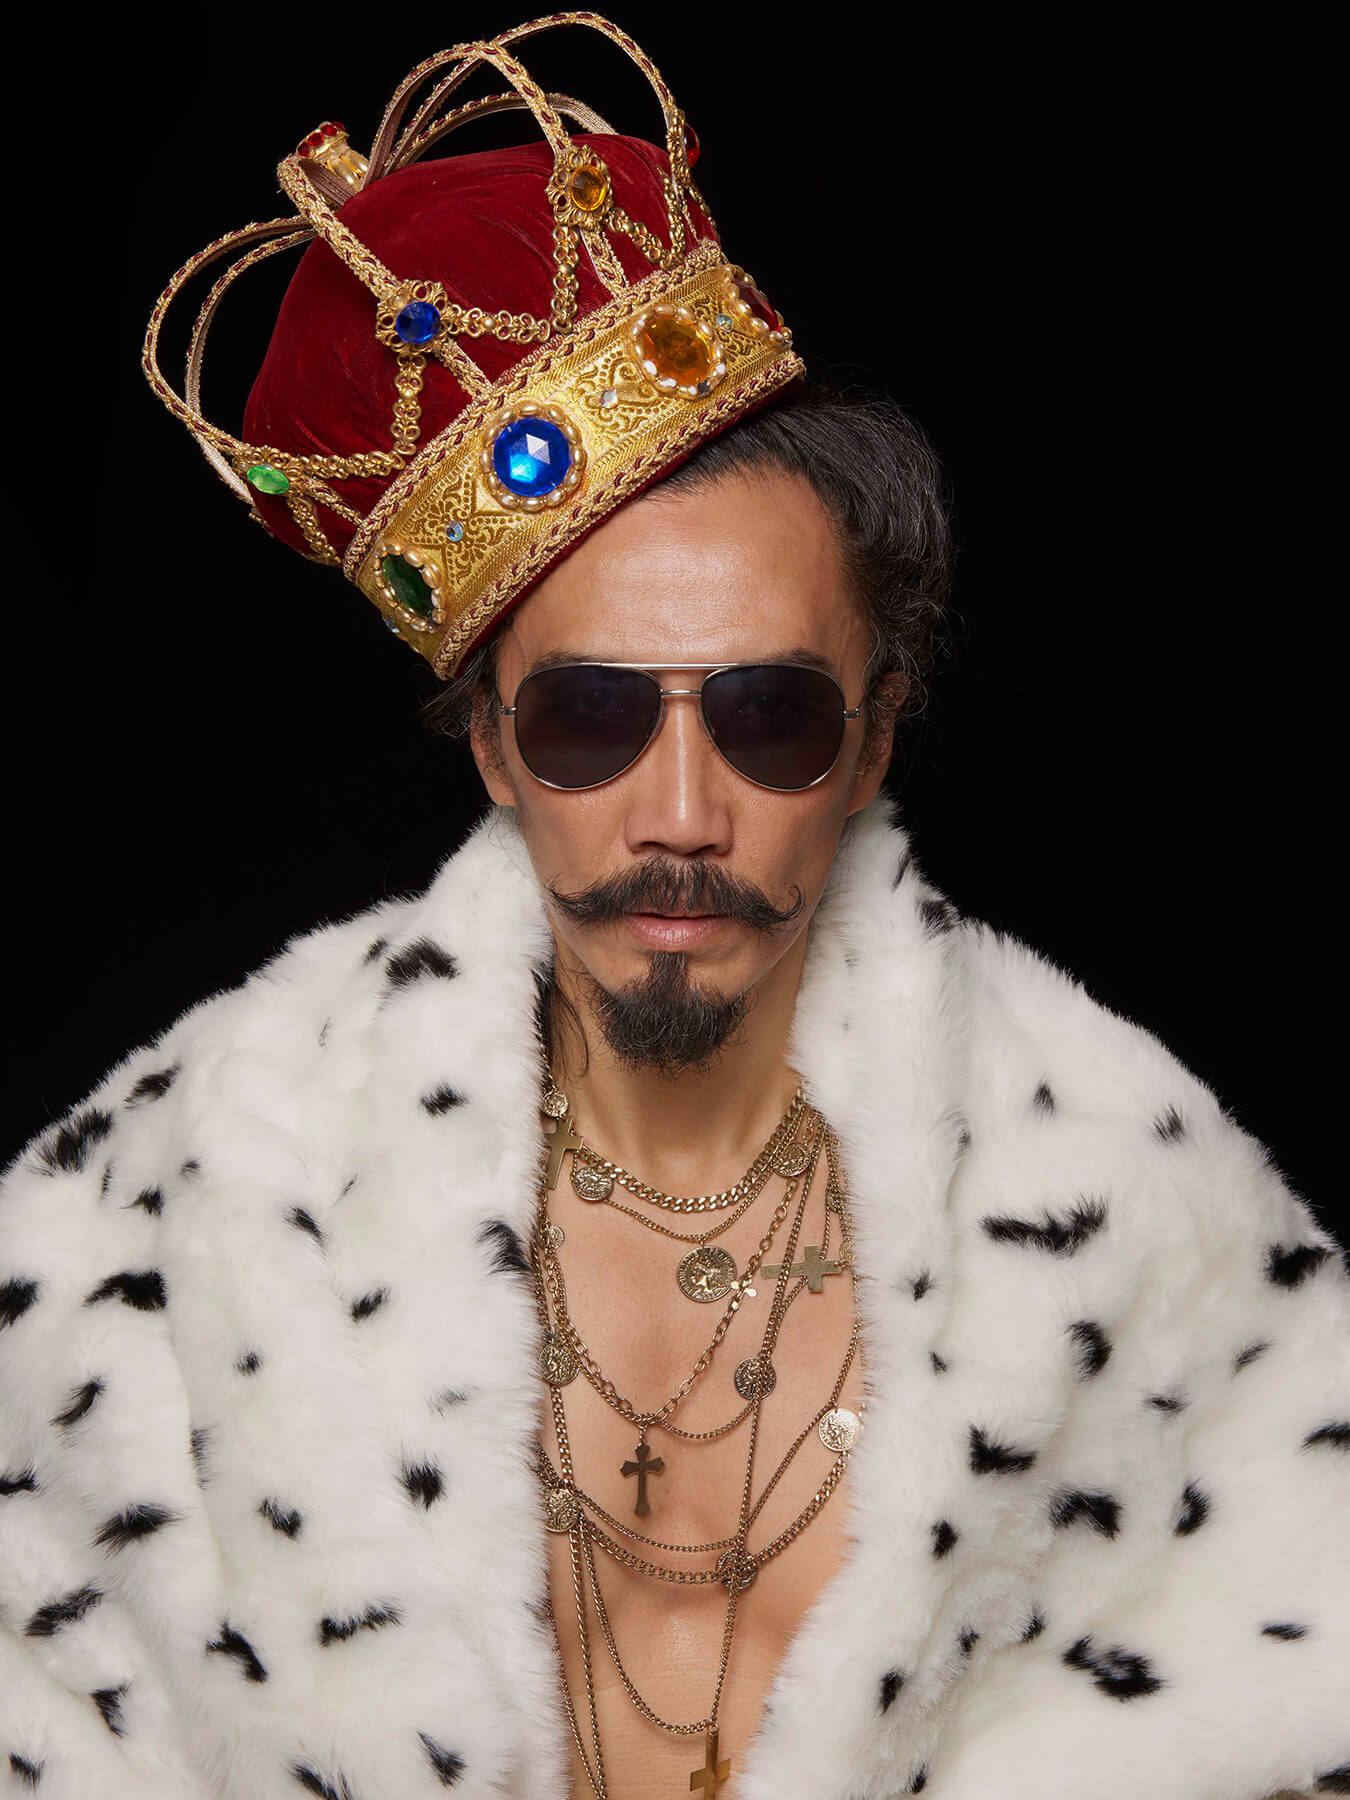 6 Jan 2018 Derong is dressed as a king